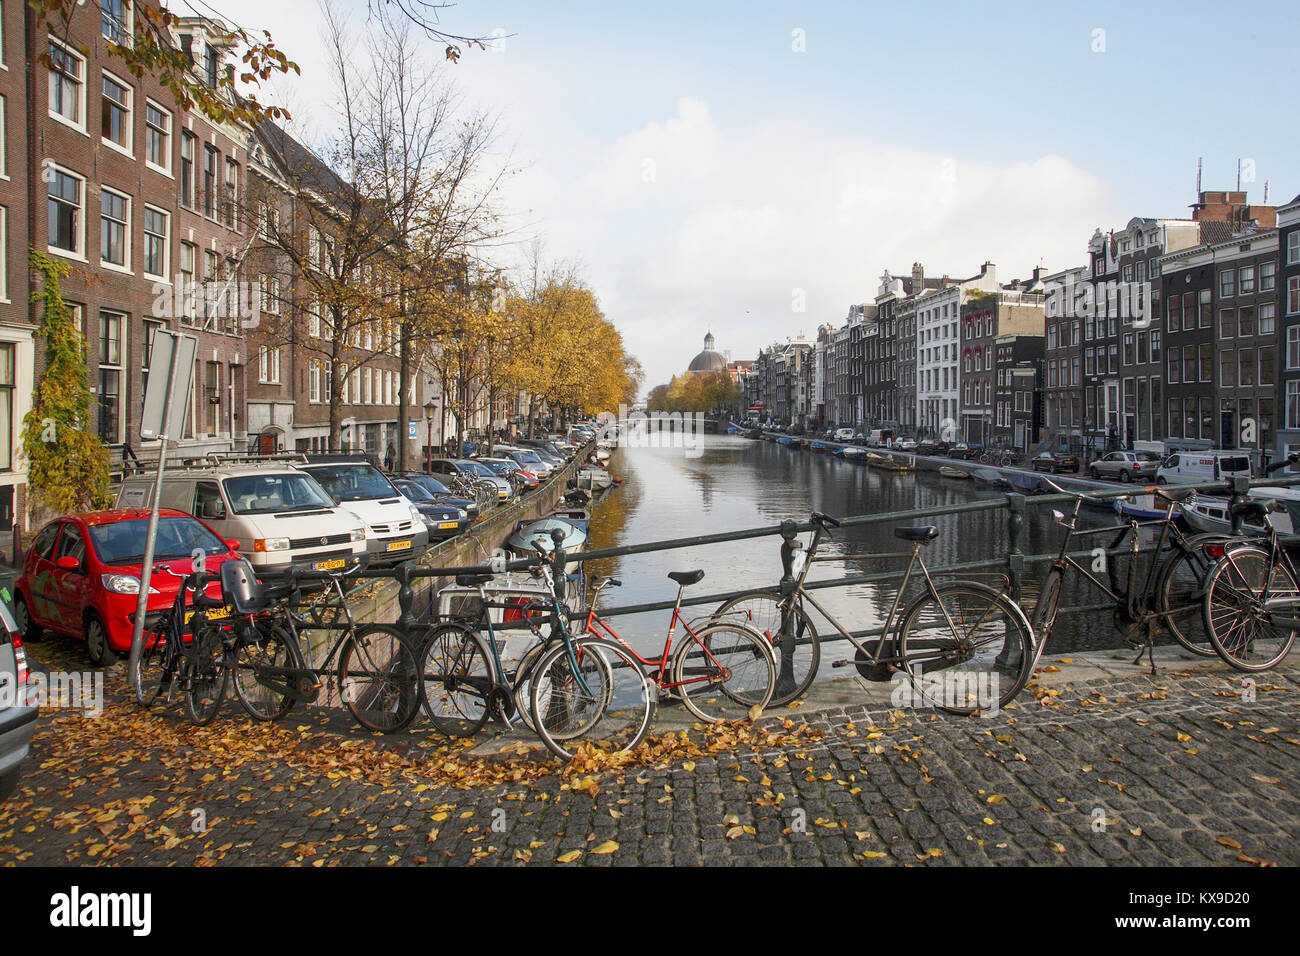 Kaizersgracht with houseboats at the quays 2007 - Stock Image